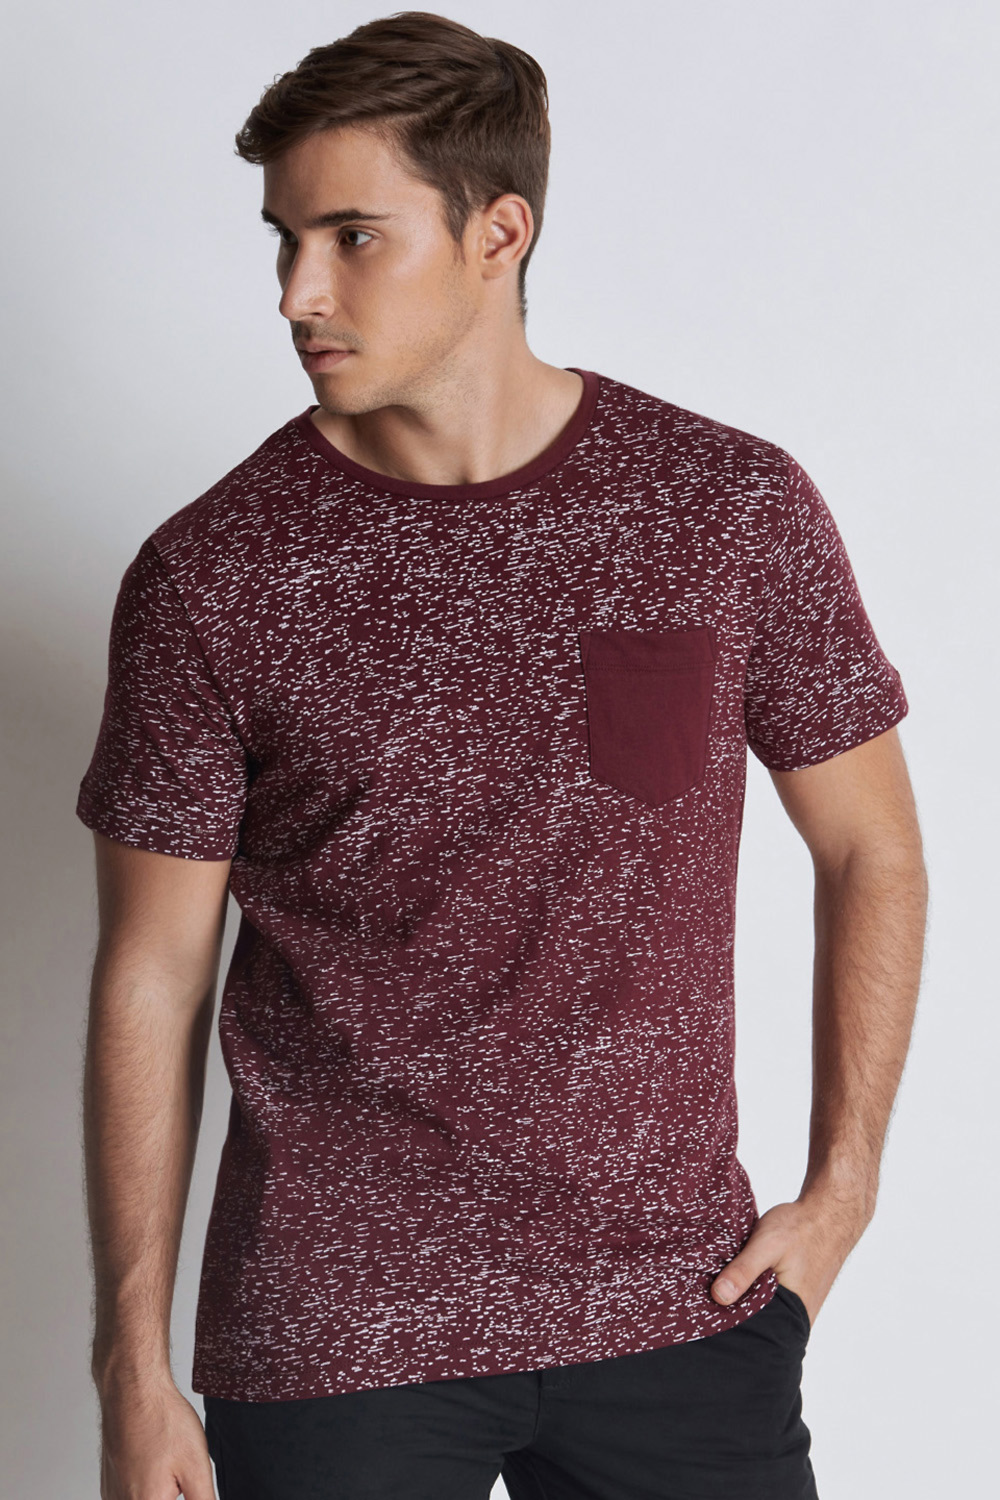 637dceca7 Buy T Shirts for Men Online with Best Price in India | Pantaloons